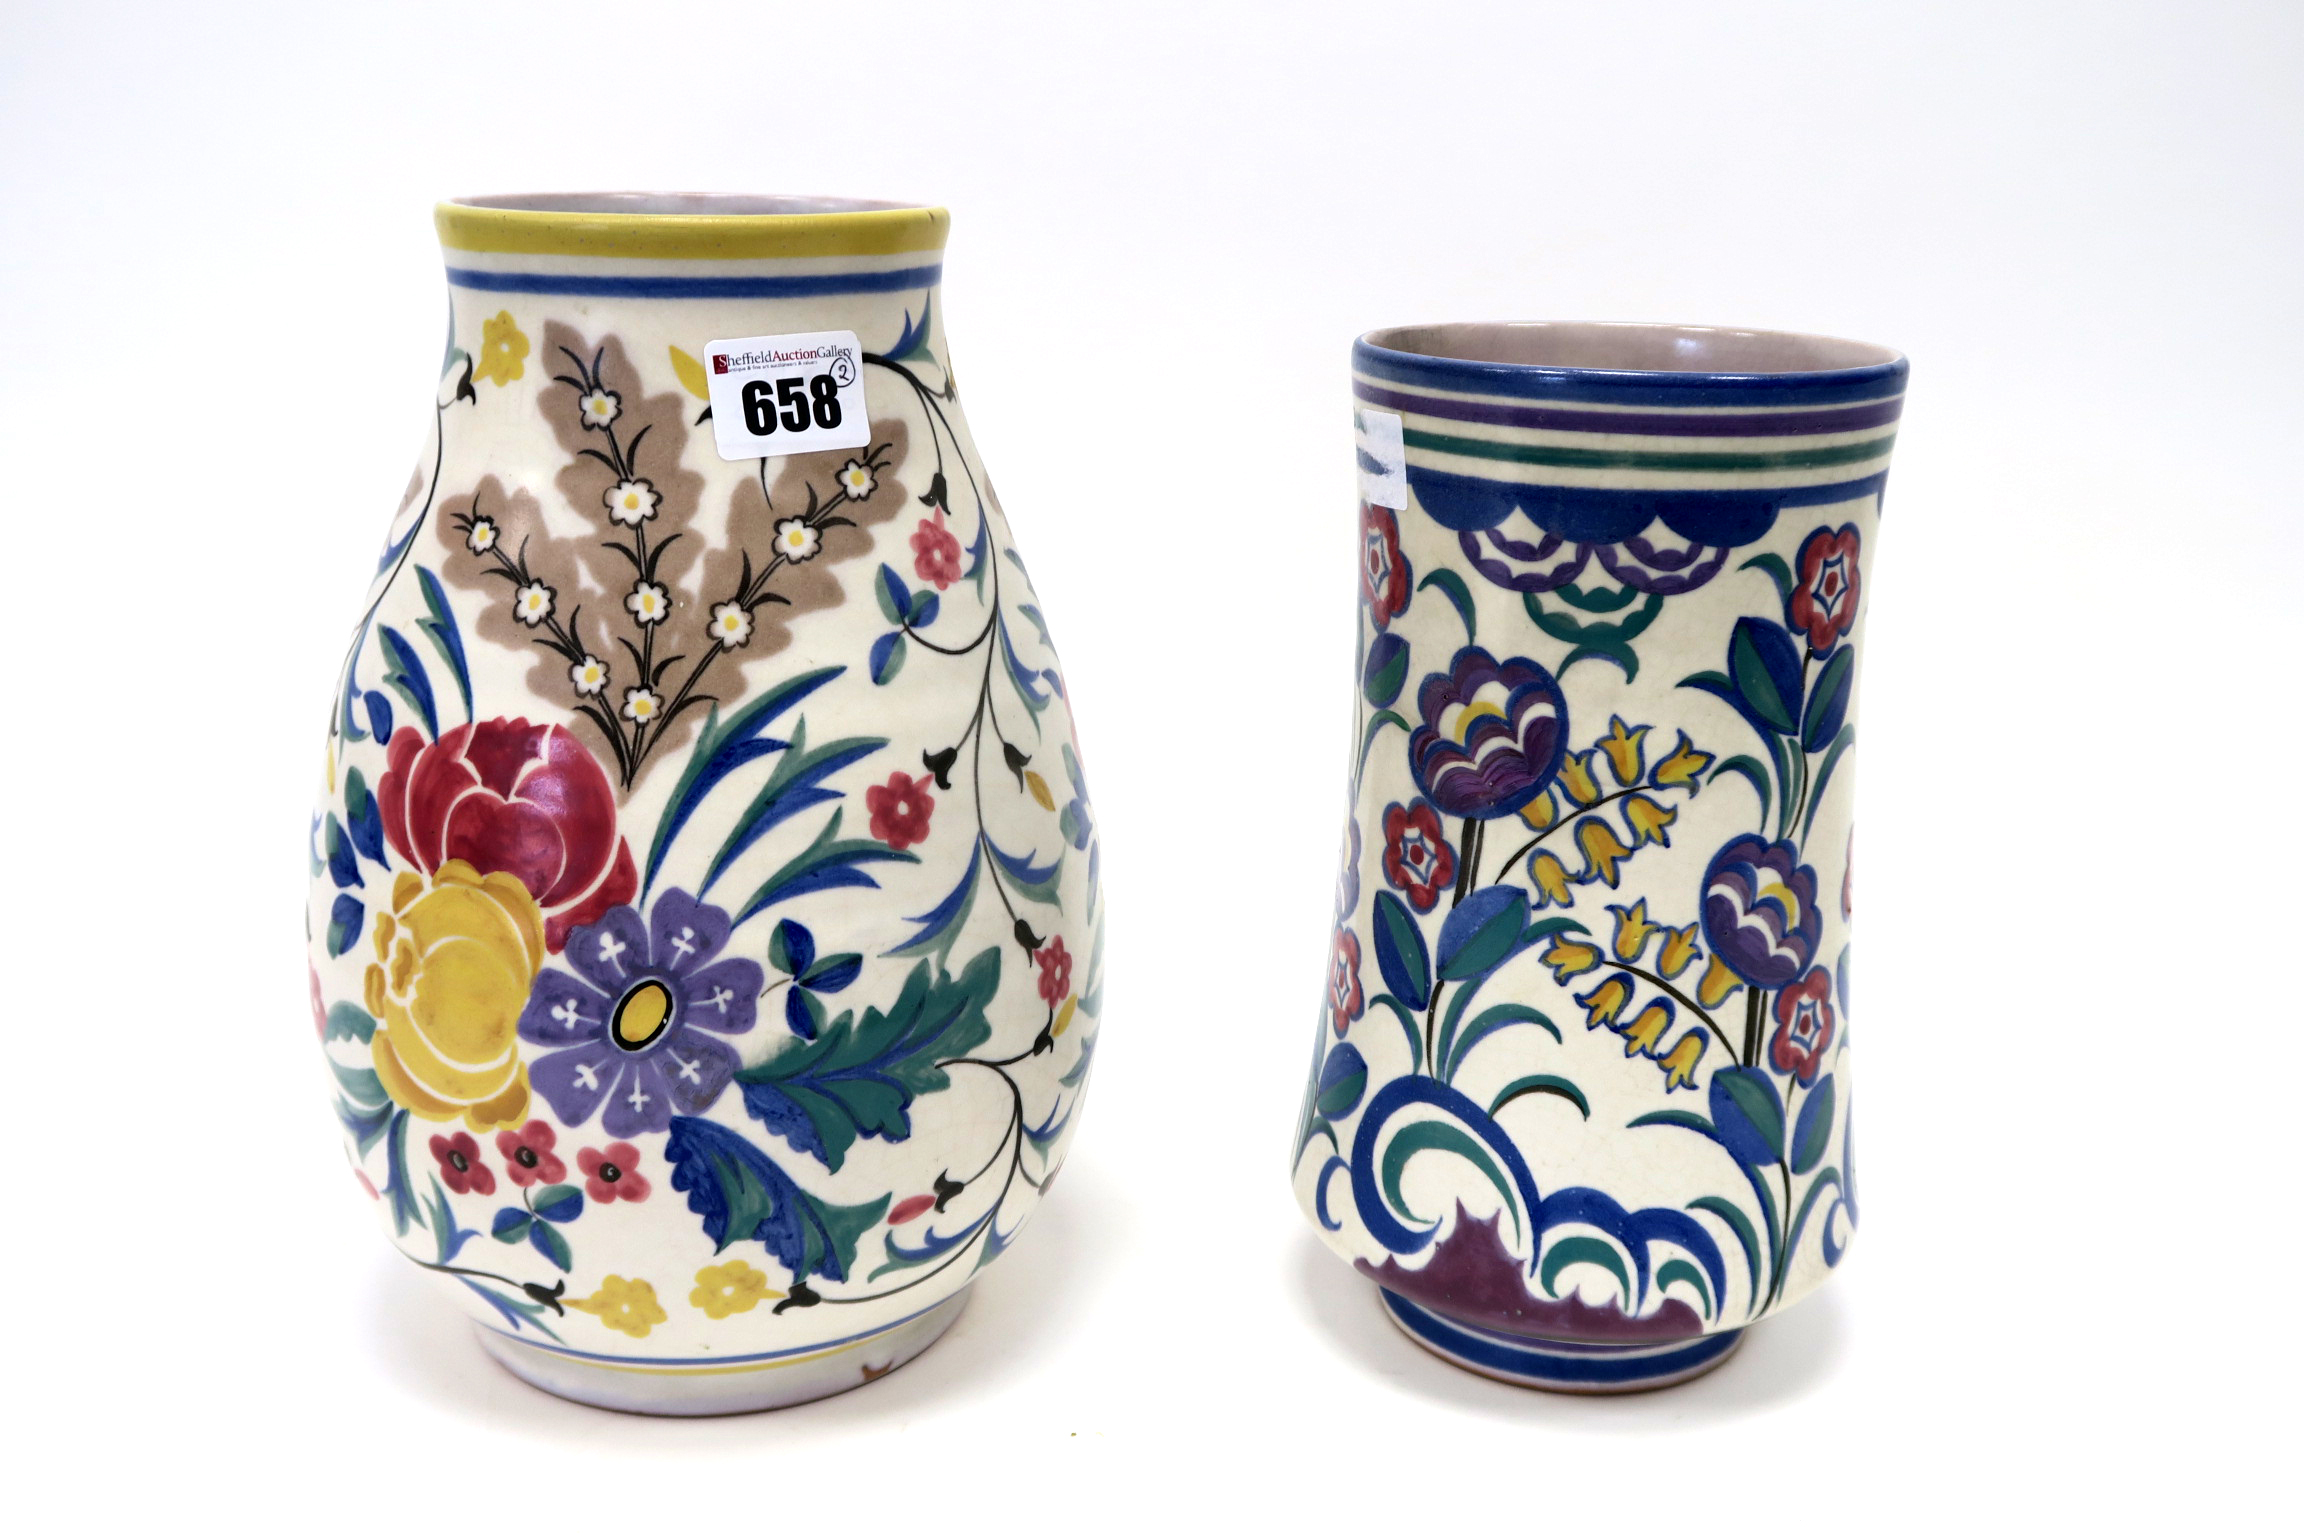 Lot 658 - A Carter, Stabler and Adams Poole Pottery Red Earthenware Vase, of baluster form, painted with pink,